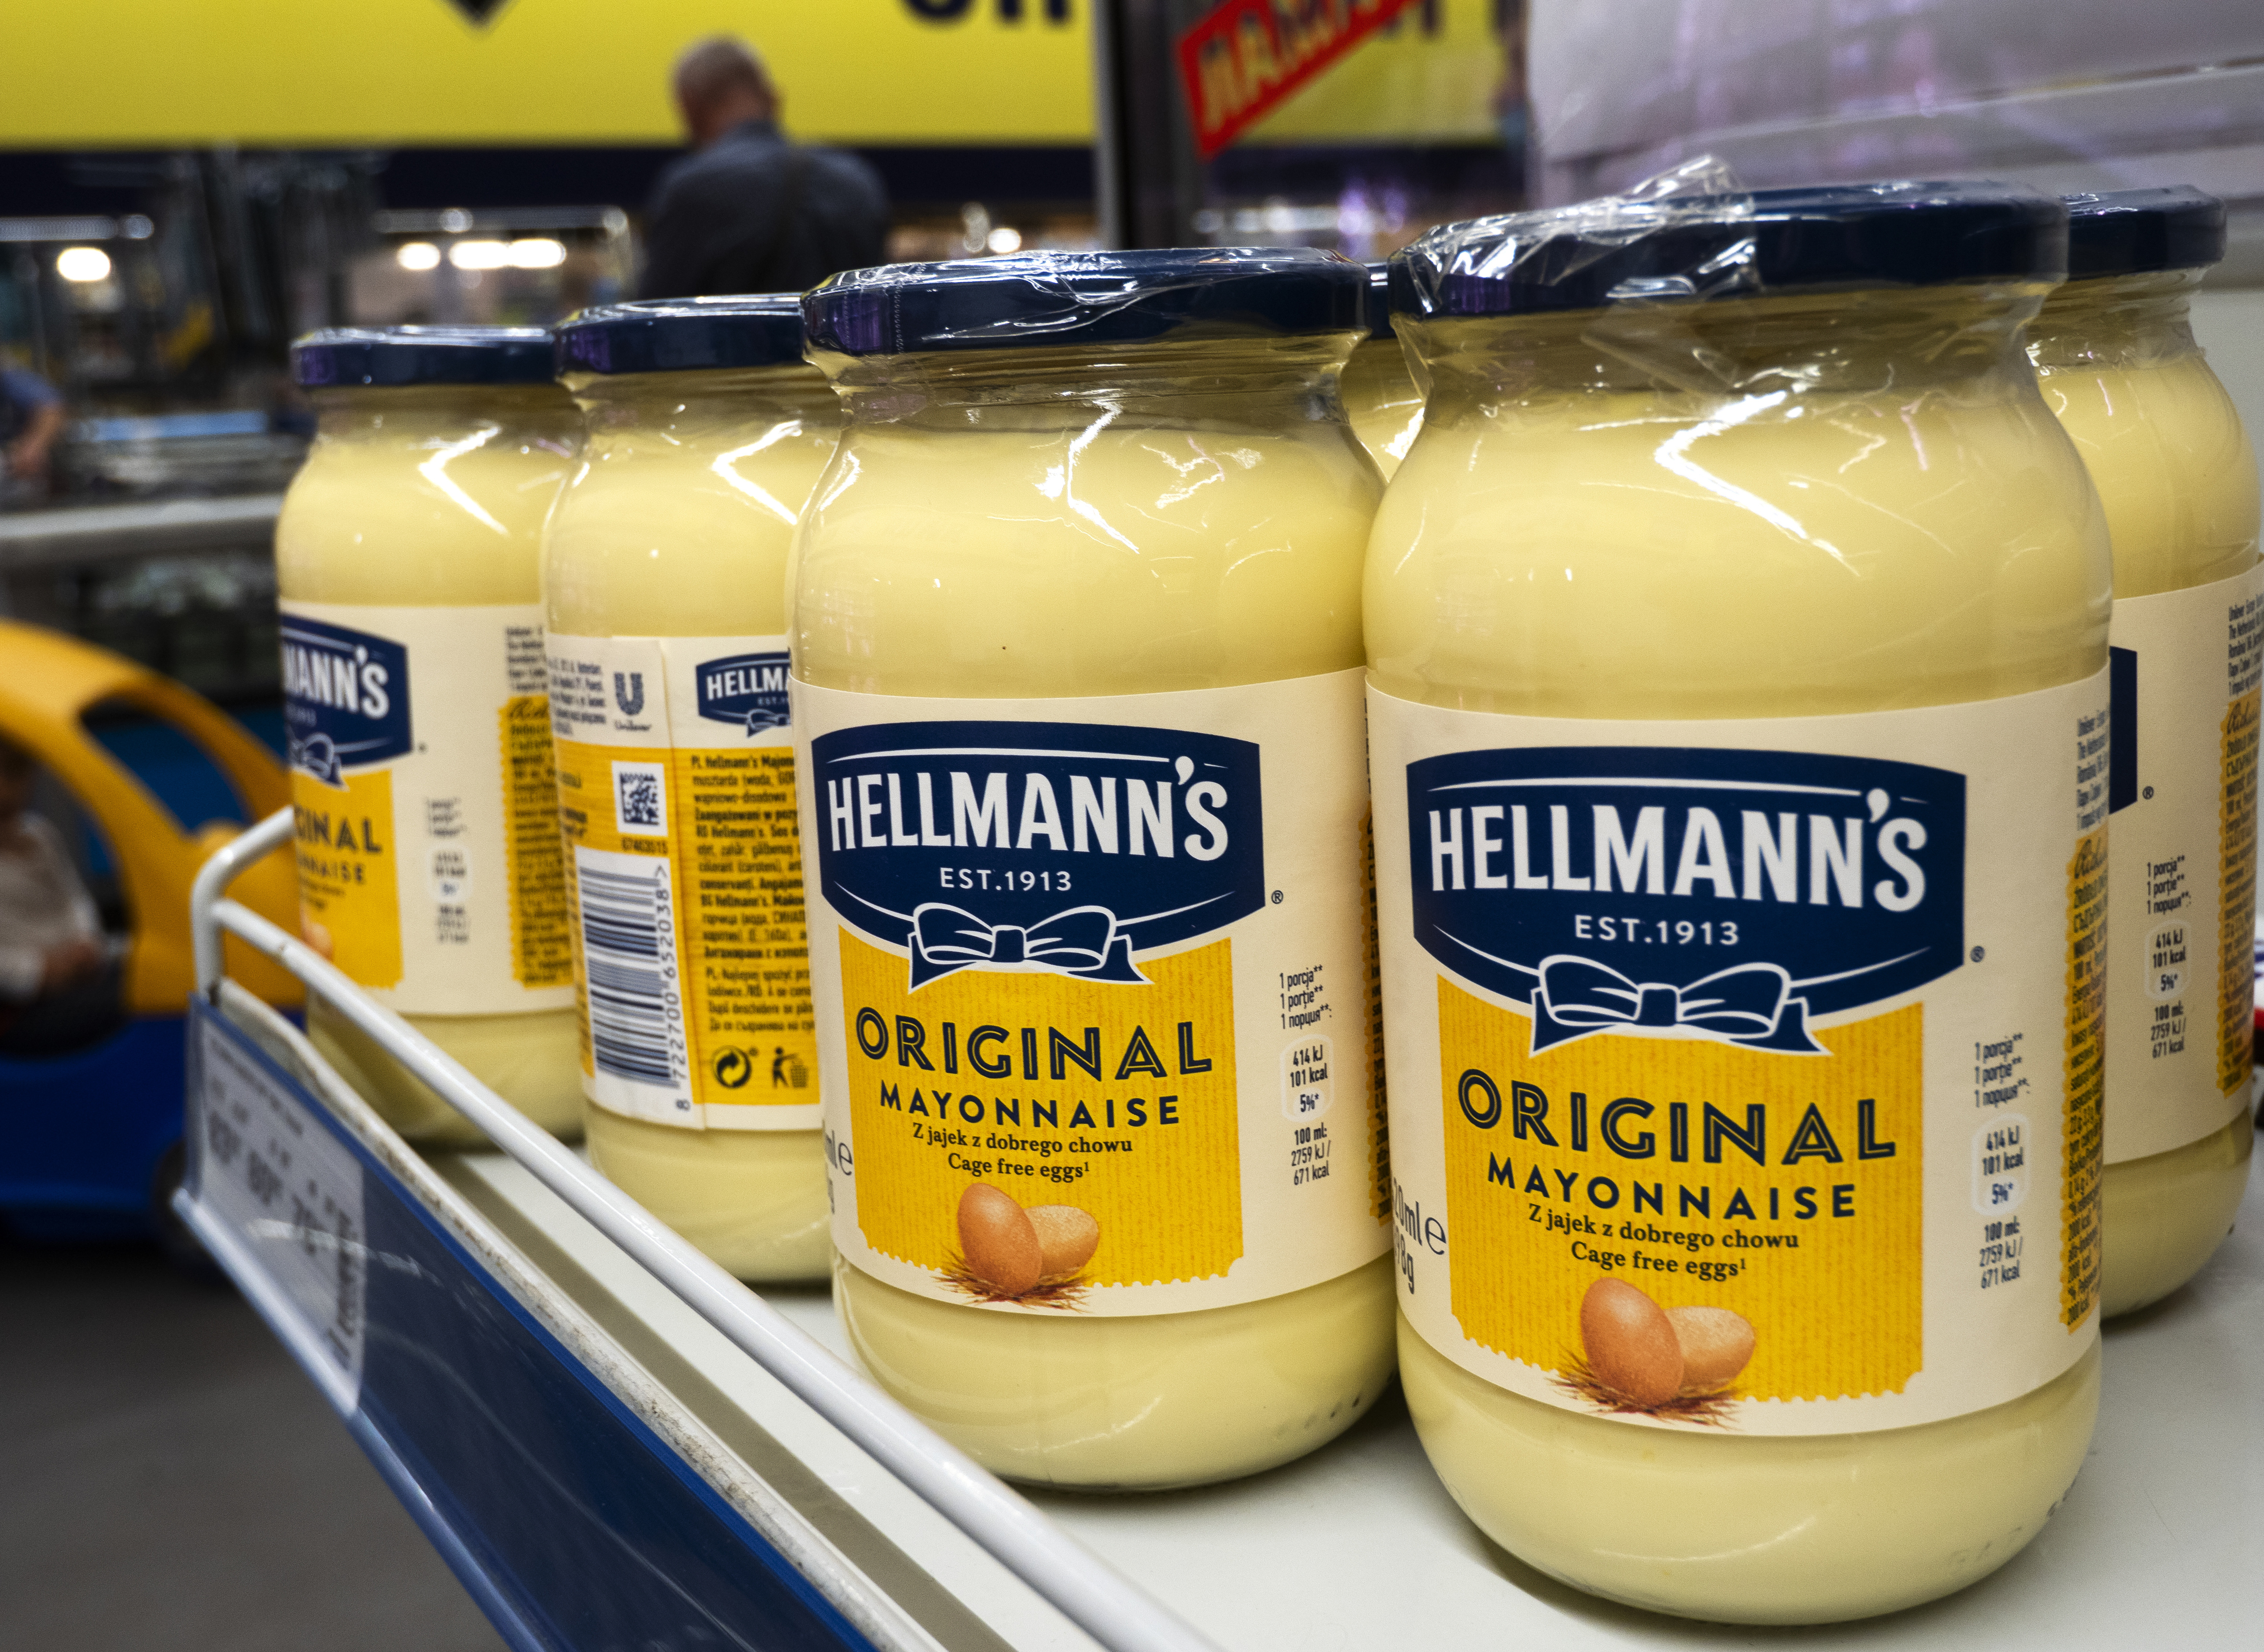 Hellmann's jars of mayonnaise seen on a shelf at a store...